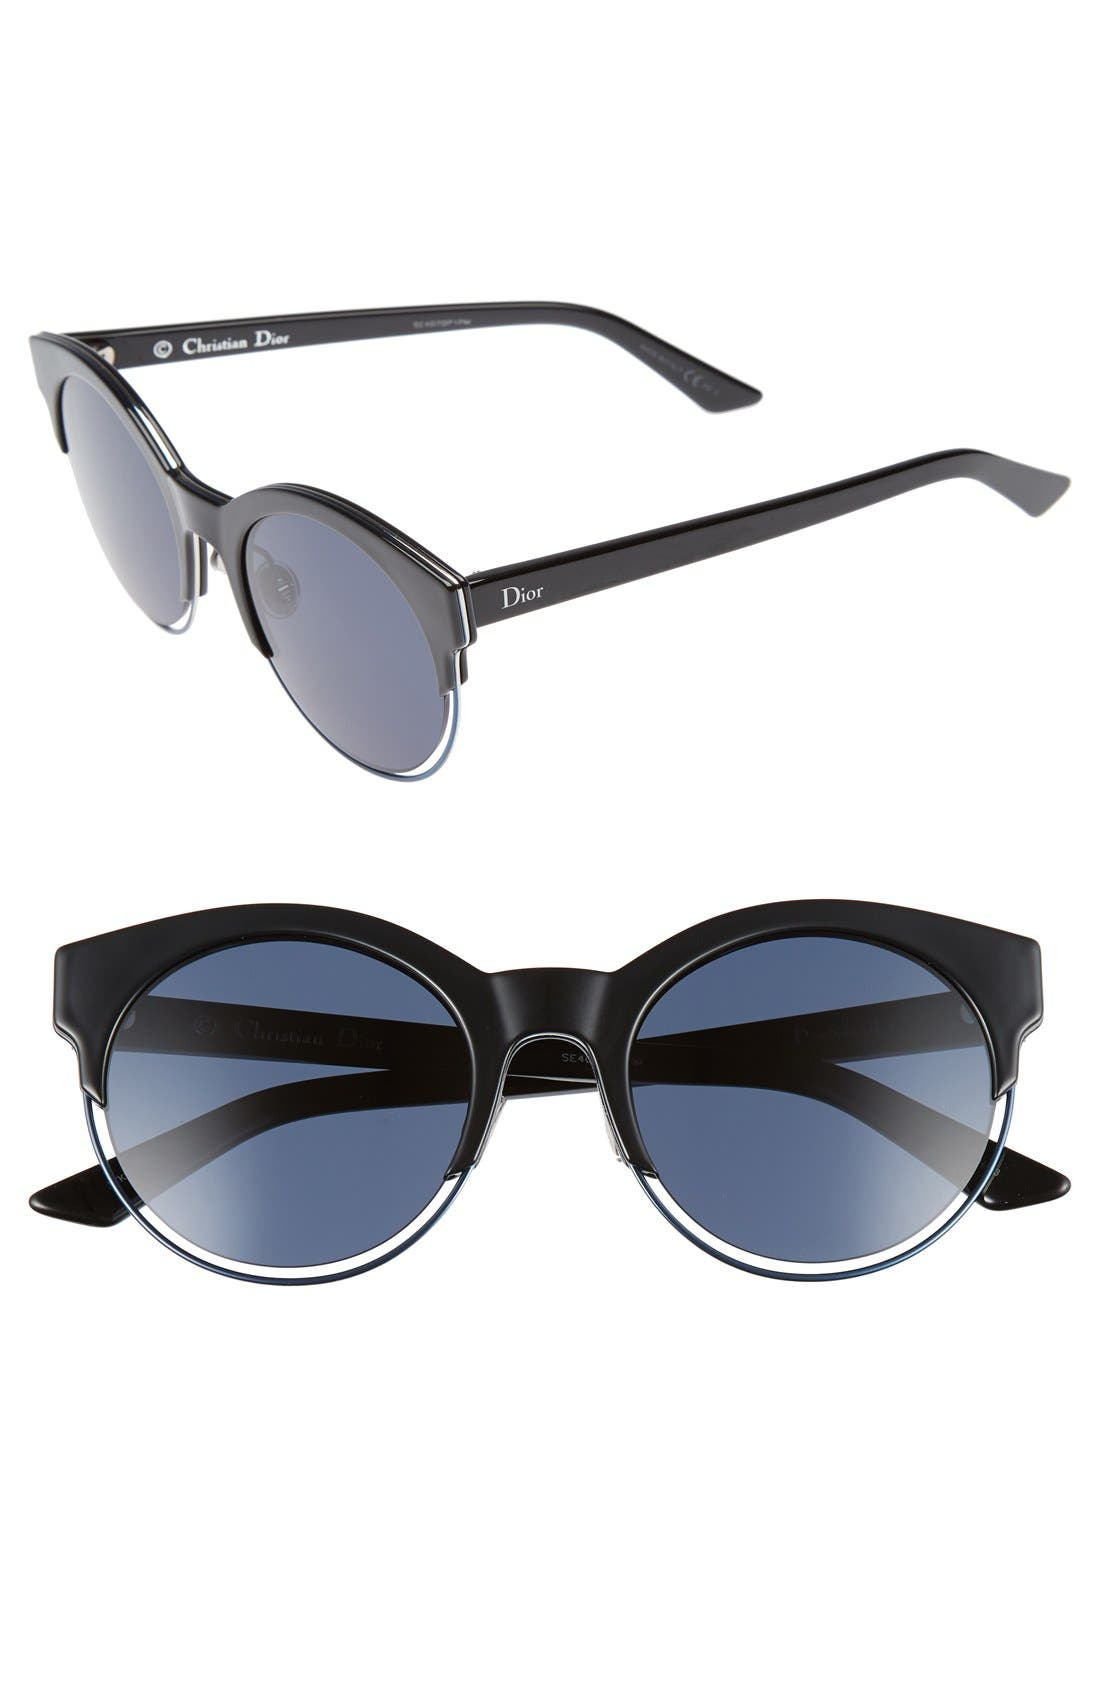 Siderall 1 53mm Round Sunglasses,                             Main thumbnail 1, color,                             Black/ Blue